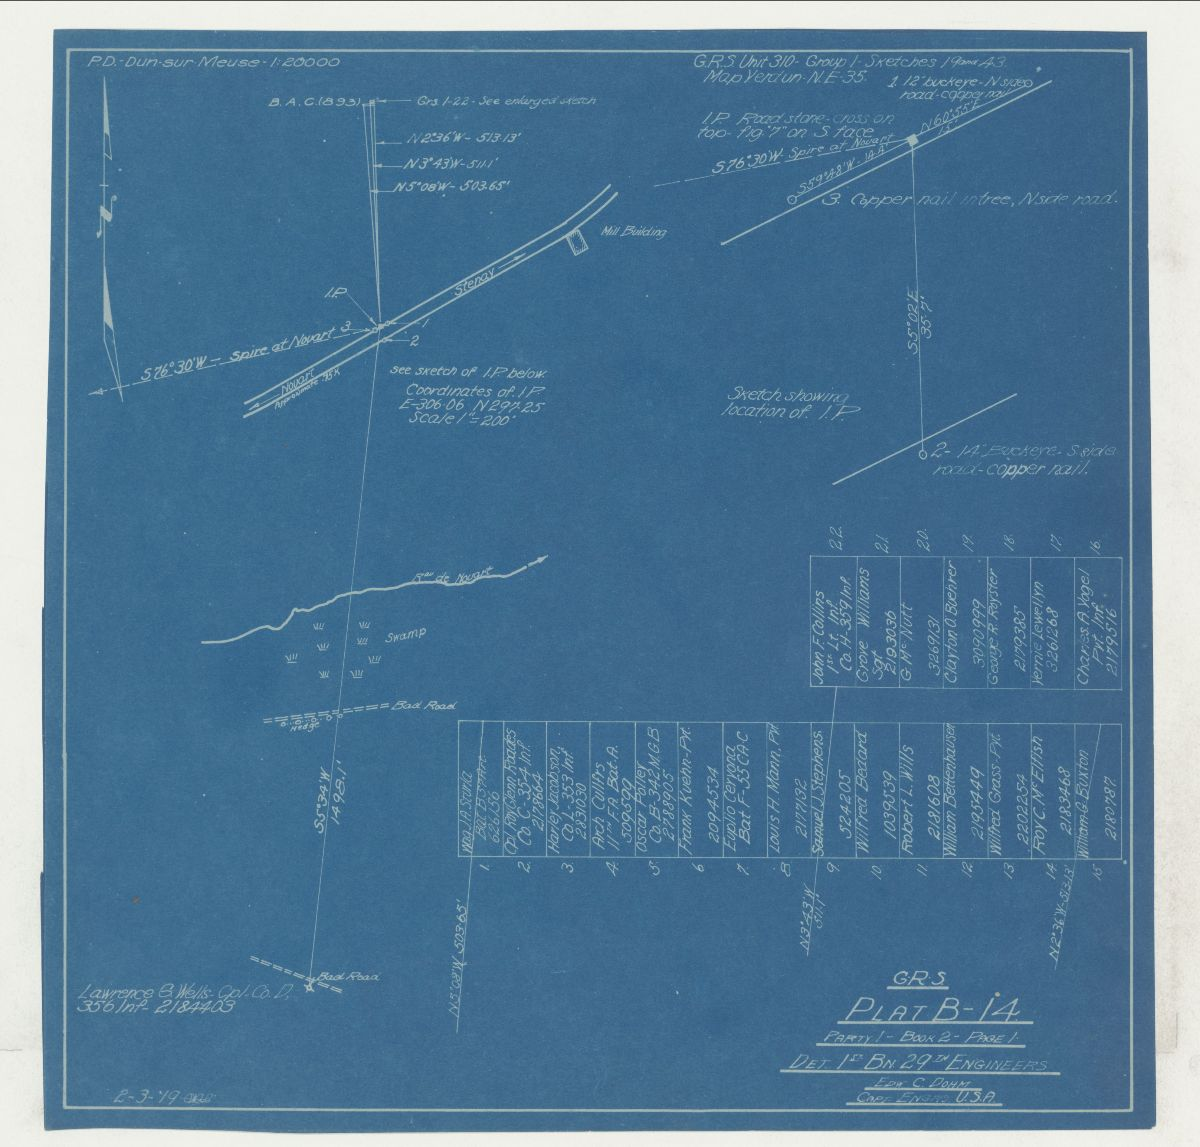 Blueprint detailing the location of American soldier battlefield grave sites during World War I.